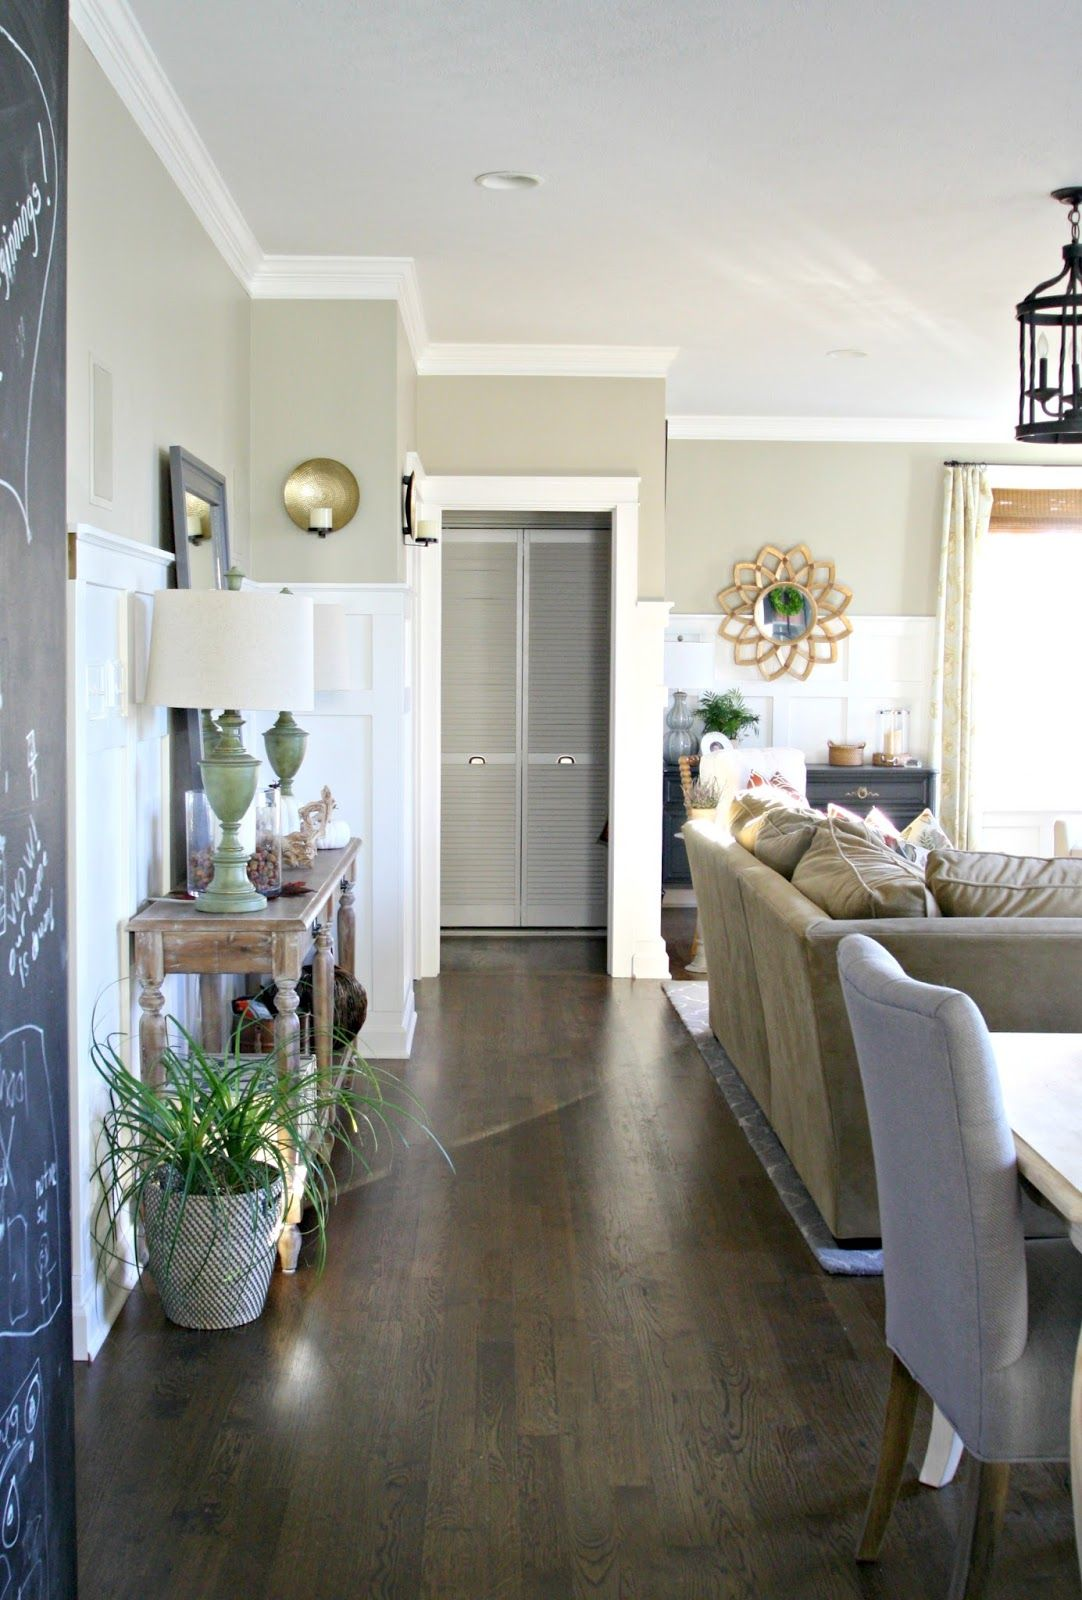 Thrifty decor chick faqs